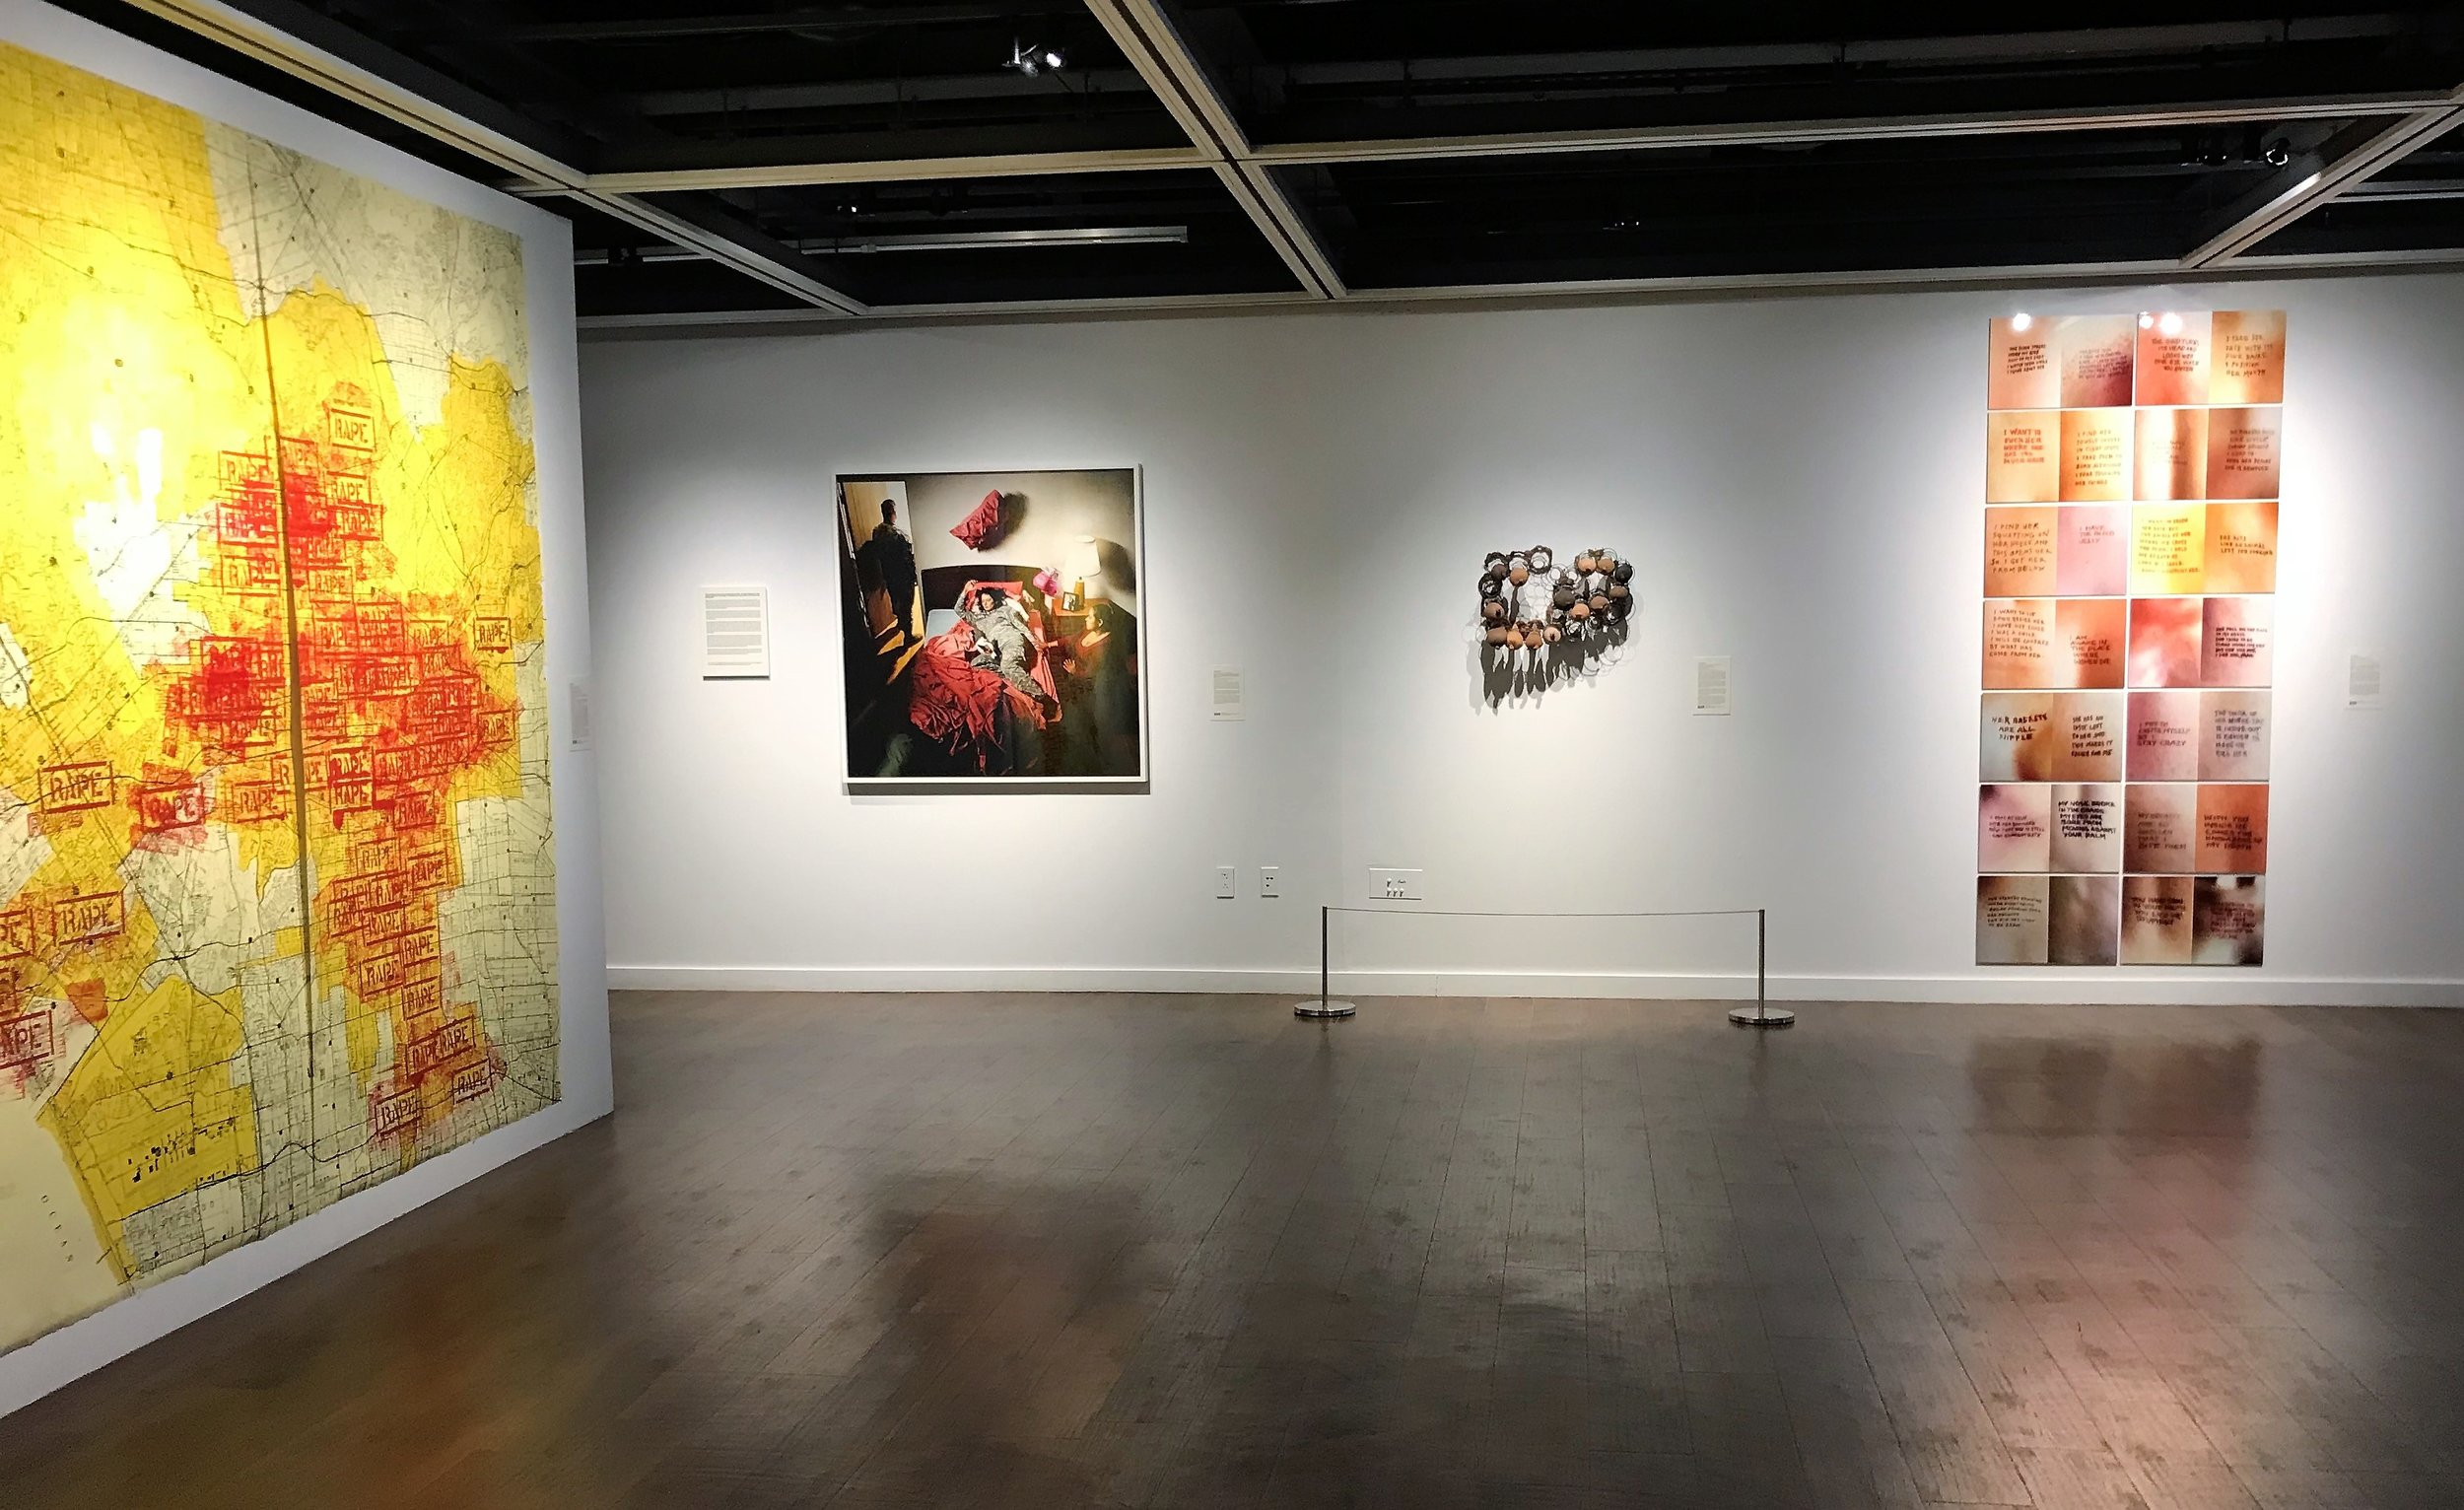 18_installation view, The Un-Heroic Act, Shiva Gallery JJC. Photo Monika Fabijanska